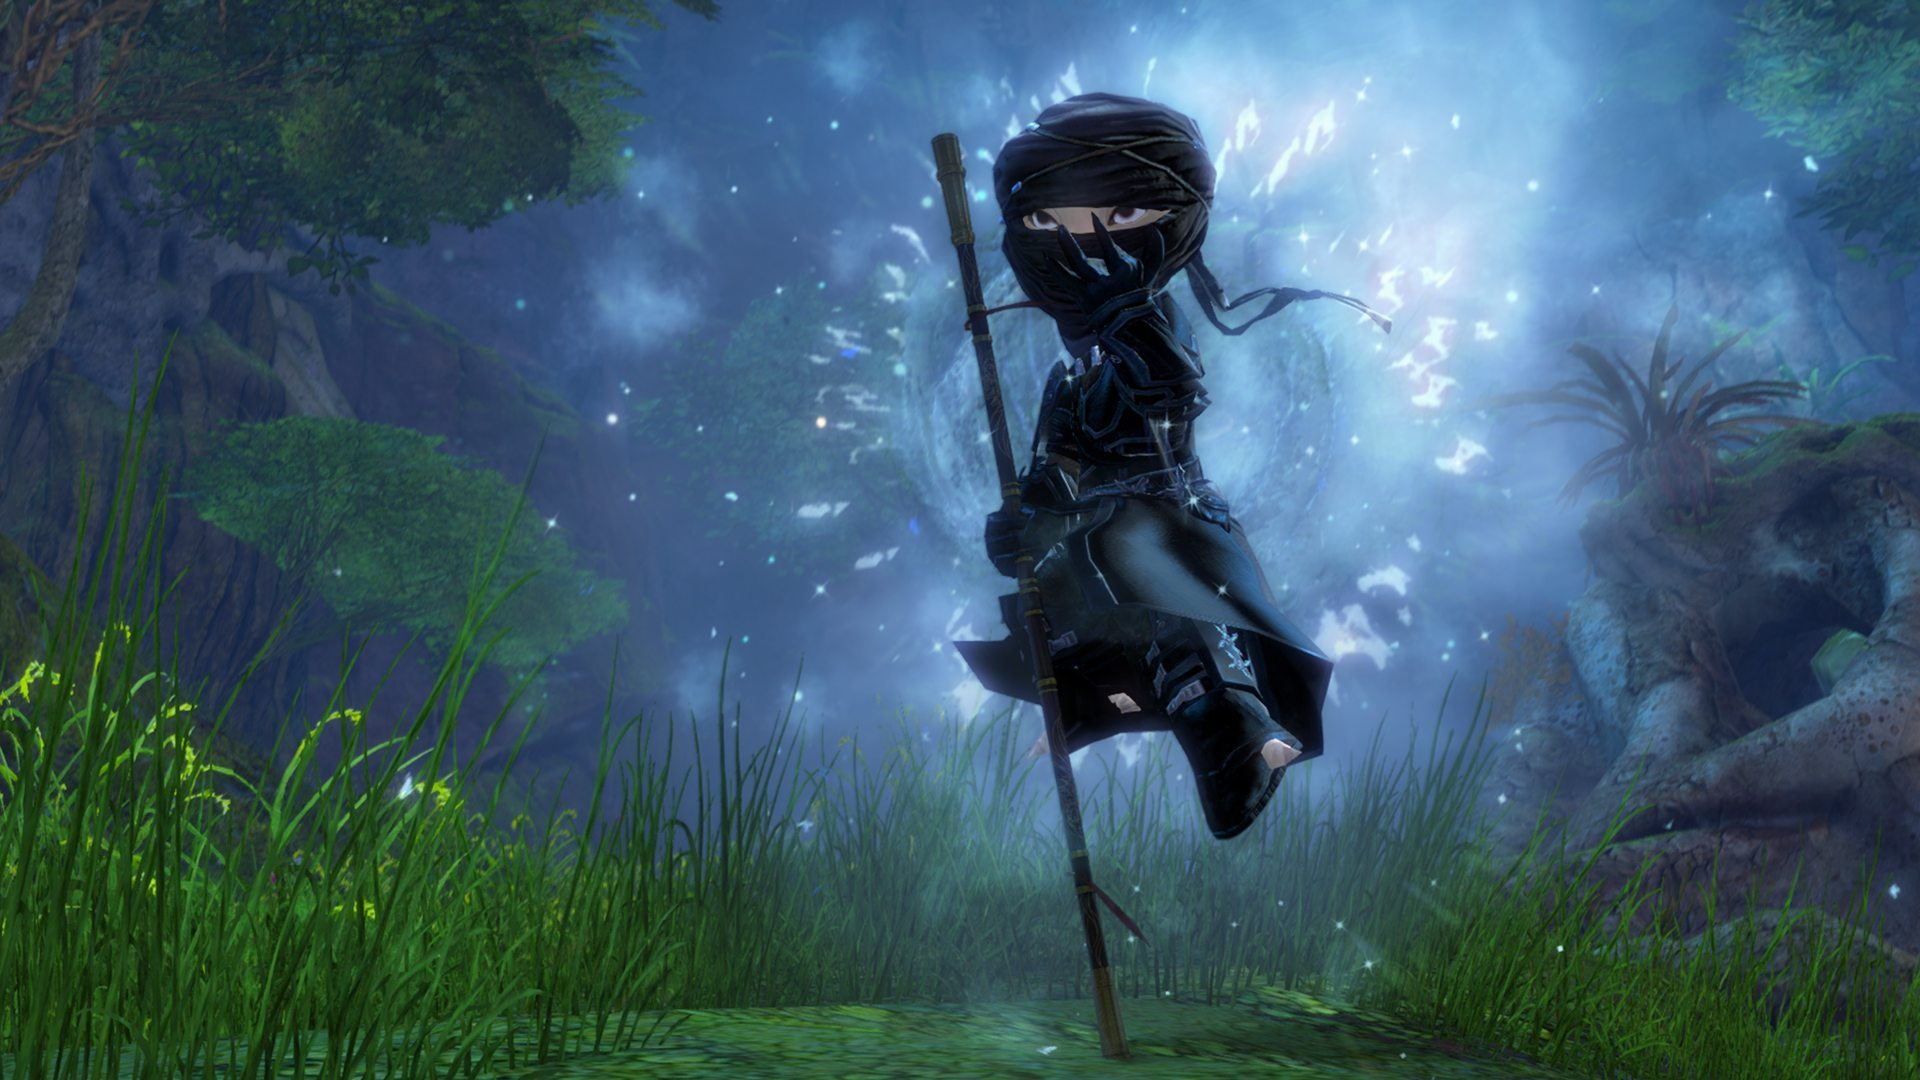 Meet the Daredevil: Guild Wars 2 Latest Elite Character Class